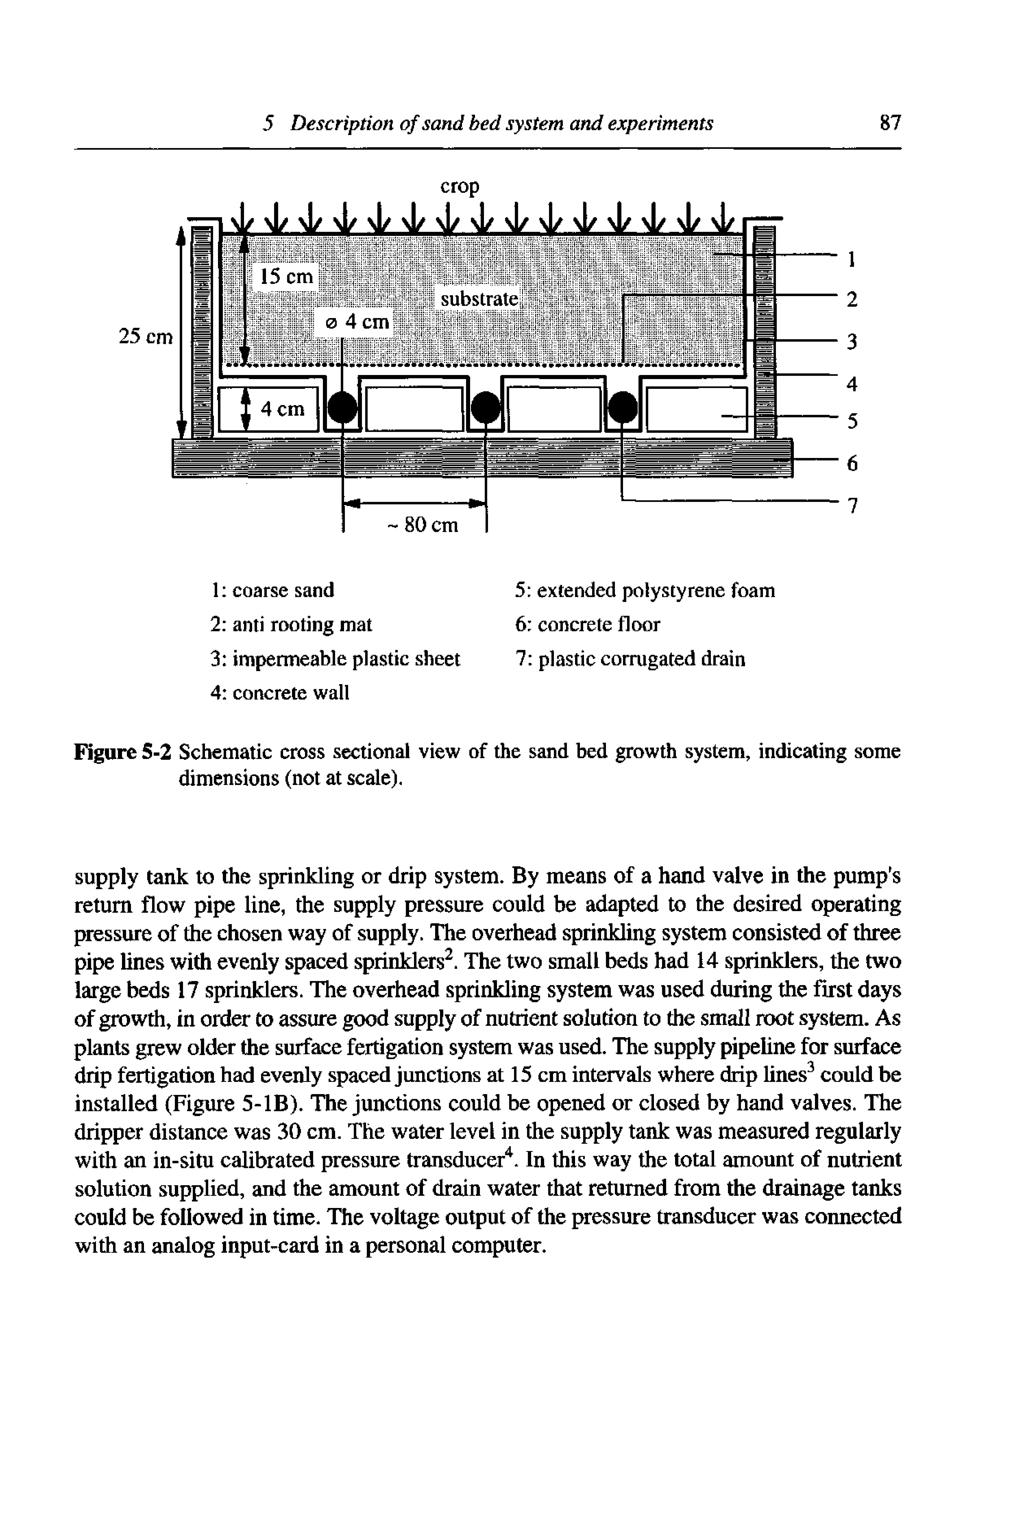 Dynamics Of Water And Nutrients In Closed Recirculating Cropping Rough Plumbing Diagram Under Sink Rwitherspoon 5 Description Sand Bed System Experiments 87 I Crop